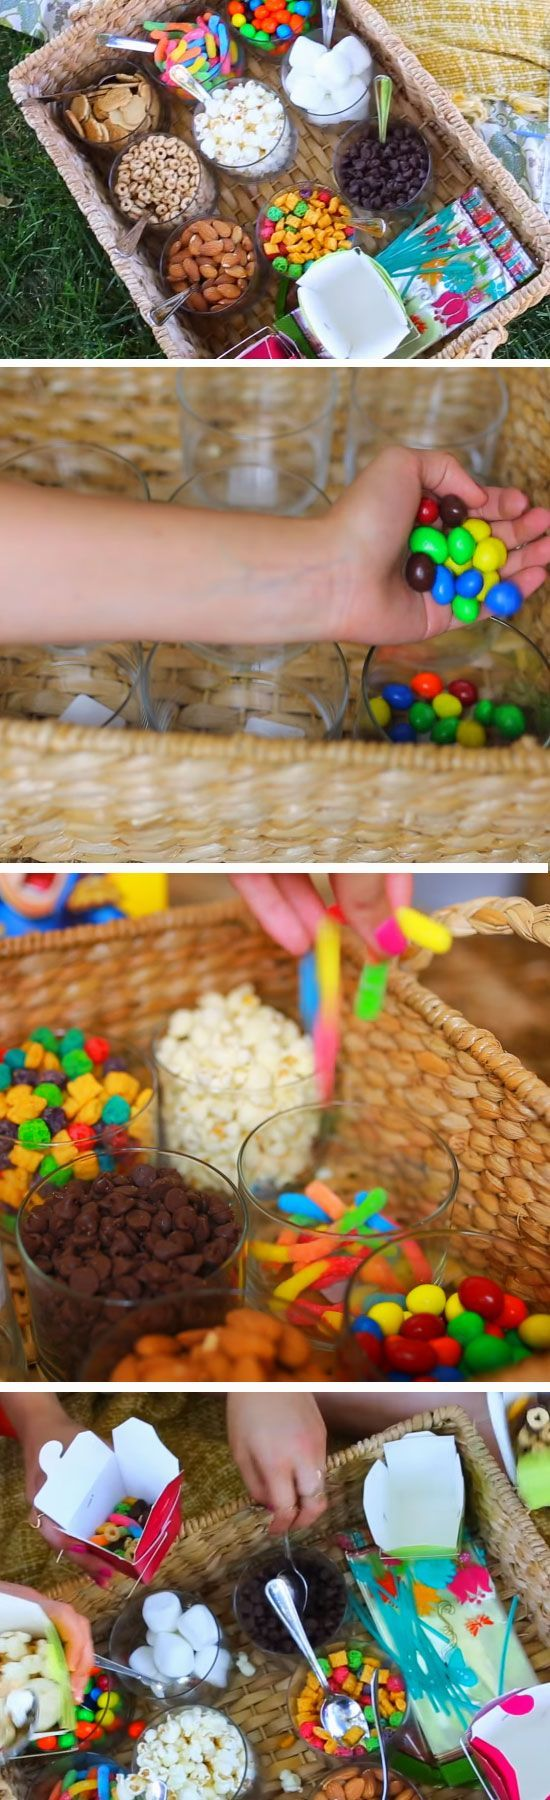 diy movie date night ideas at home also best backyard party images anniversary rh pinterest